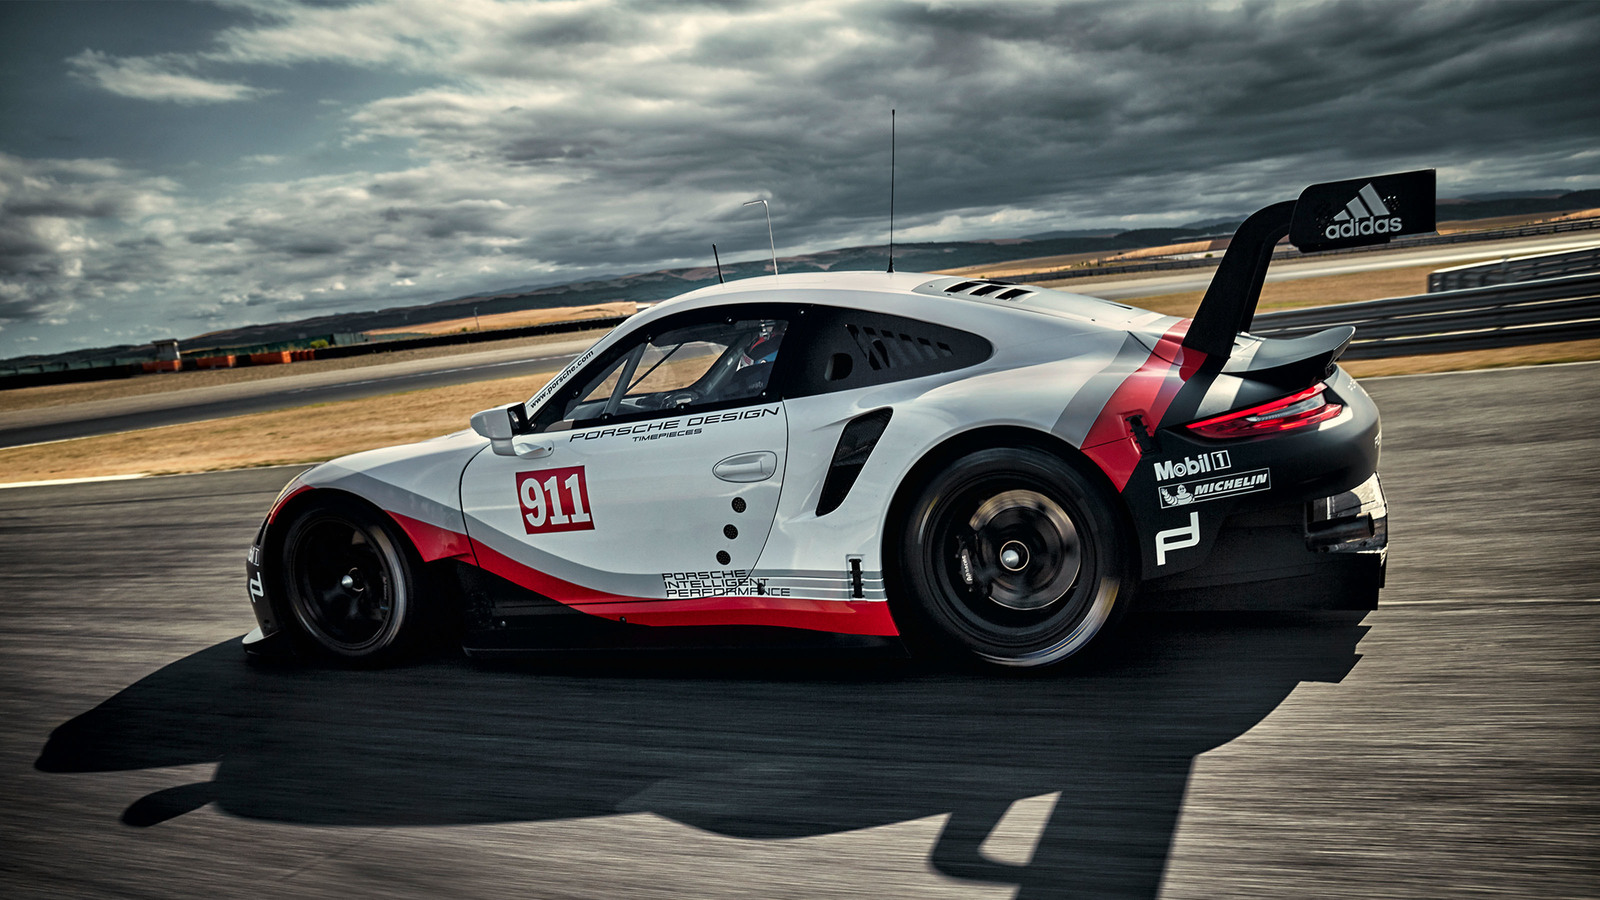 2017 Porsche 911 Rsr Race Car Is Now Mid Engined Paul